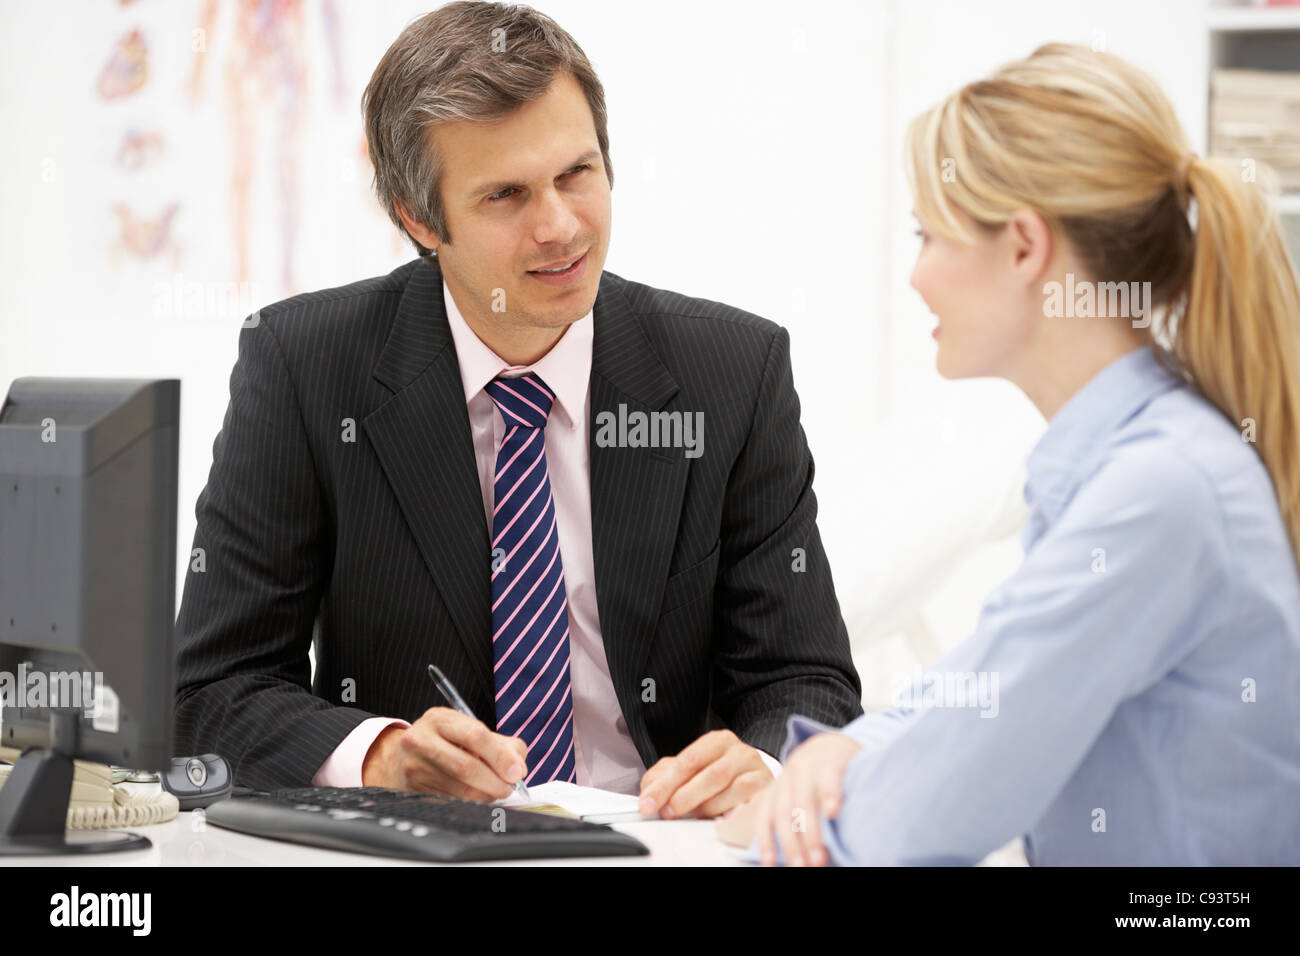 Doctor with female patient - Stock Image